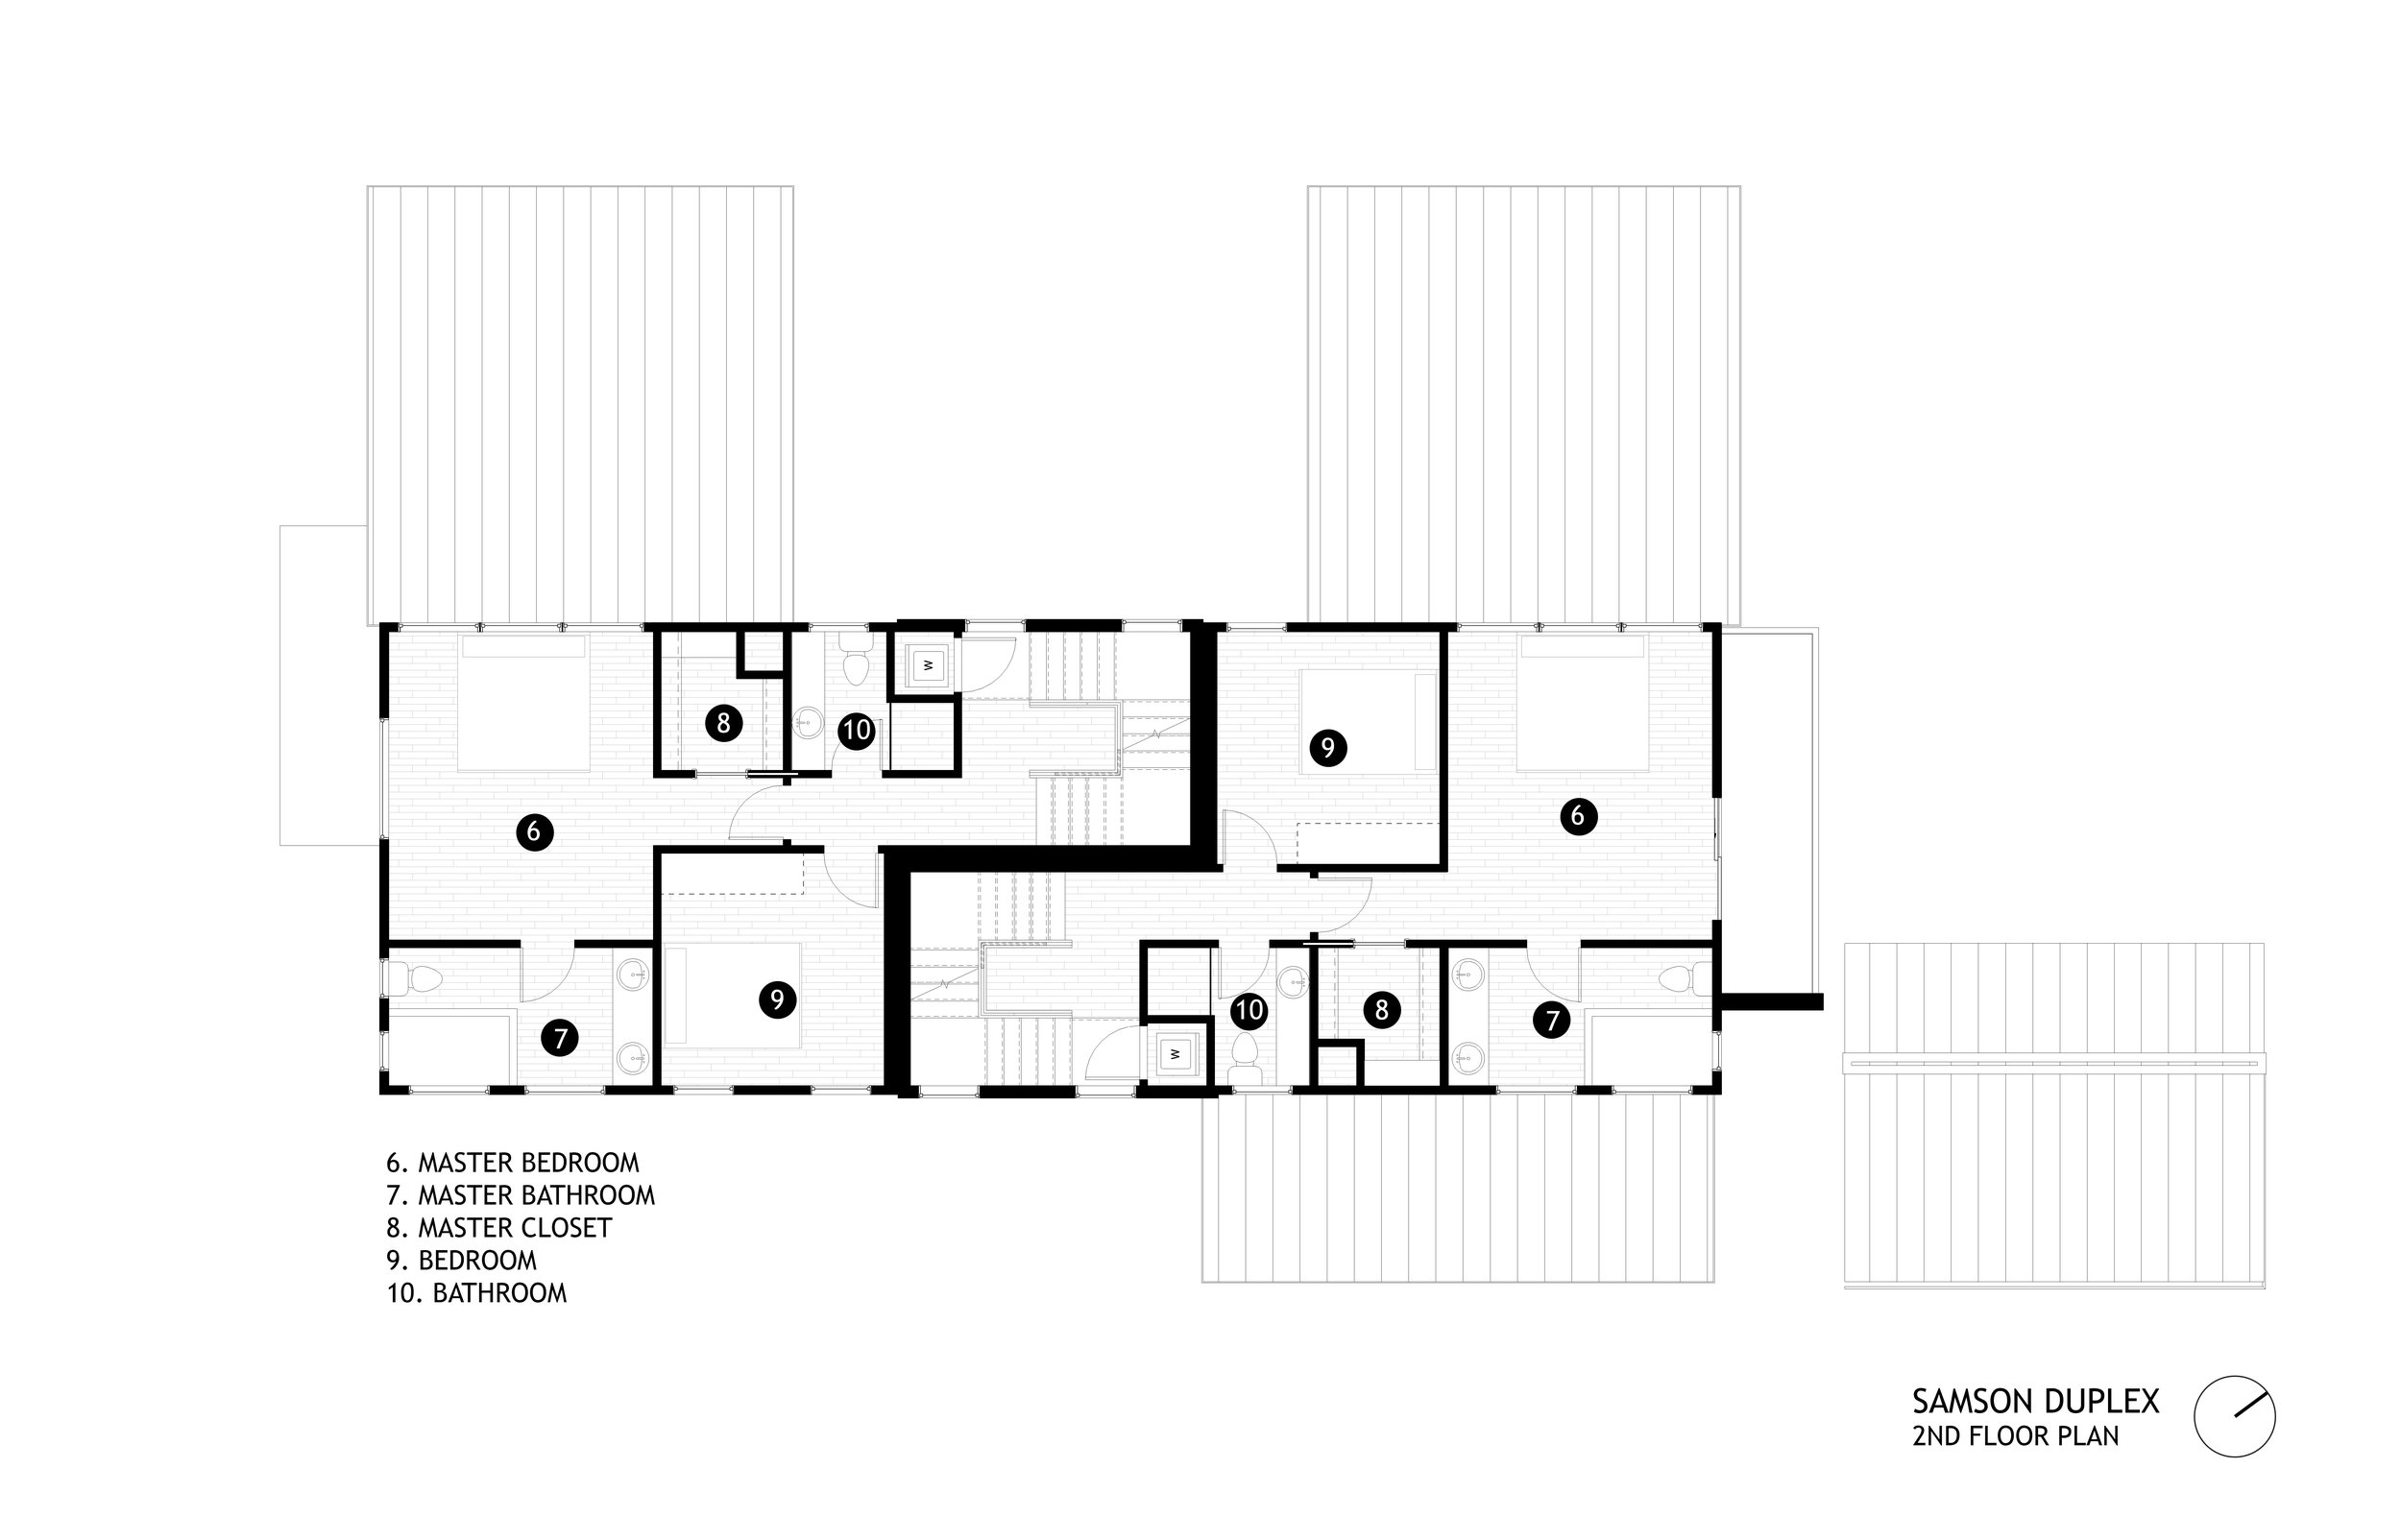 FINISHED_2ND FLOOR PLAN.jpg